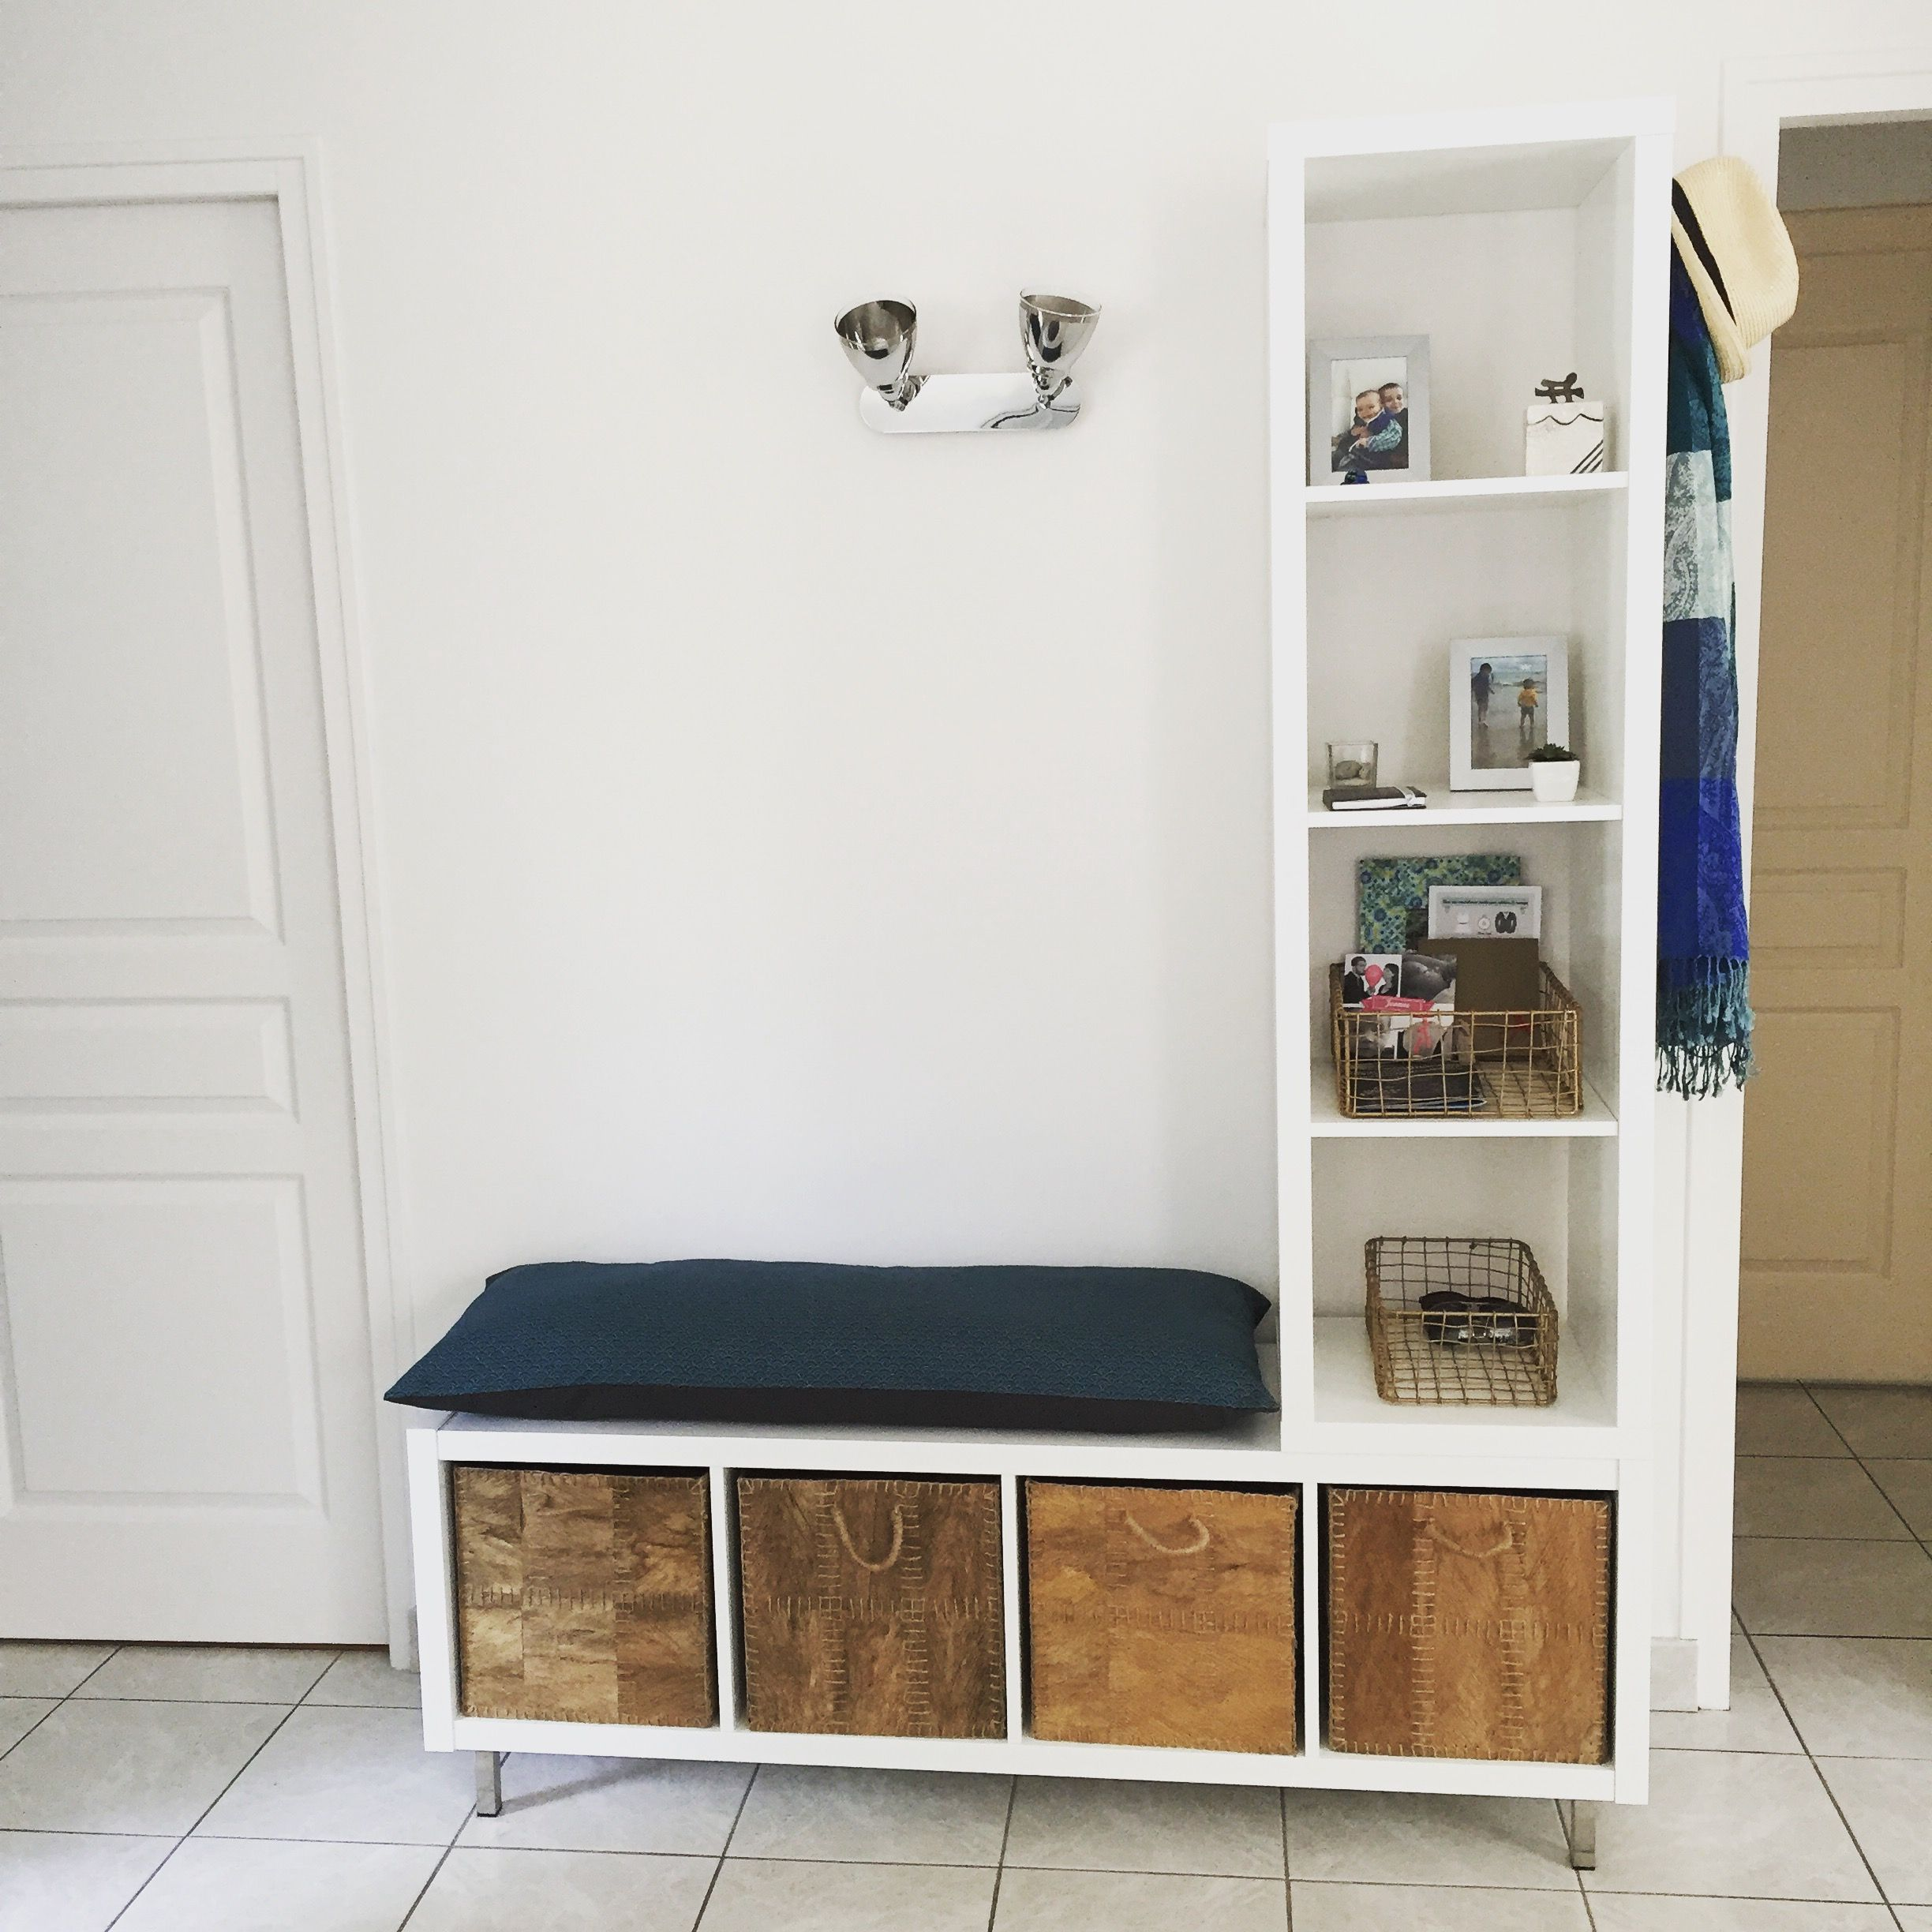 ikea hack meuble d 39 entr e bricol 2 tag res ikea paniers ikea et coussin home made